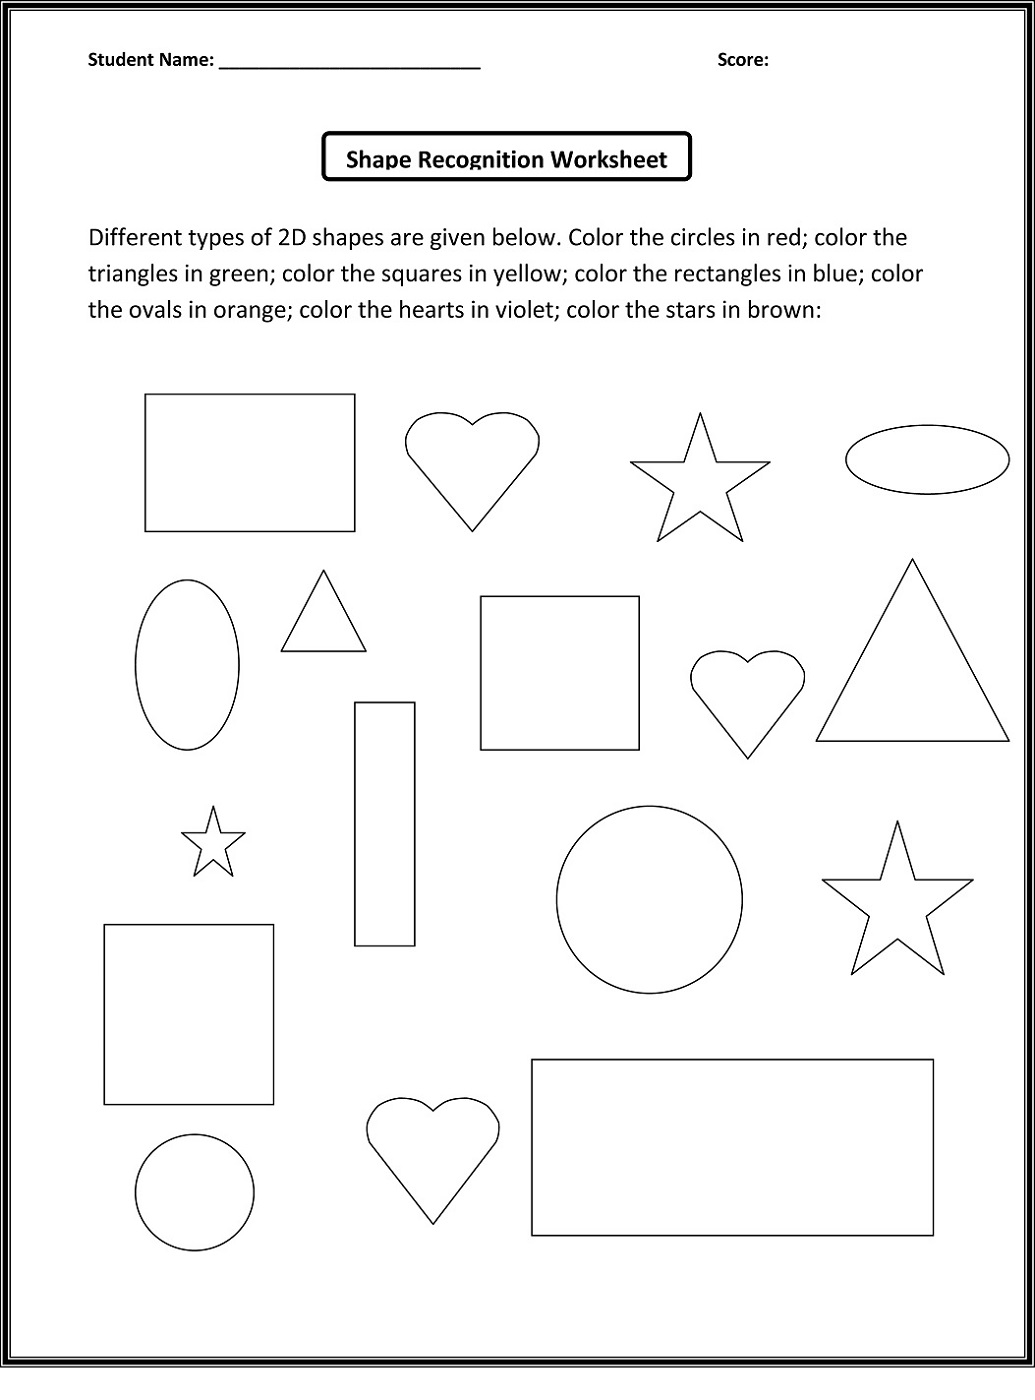 color the shapes worksheet for kids